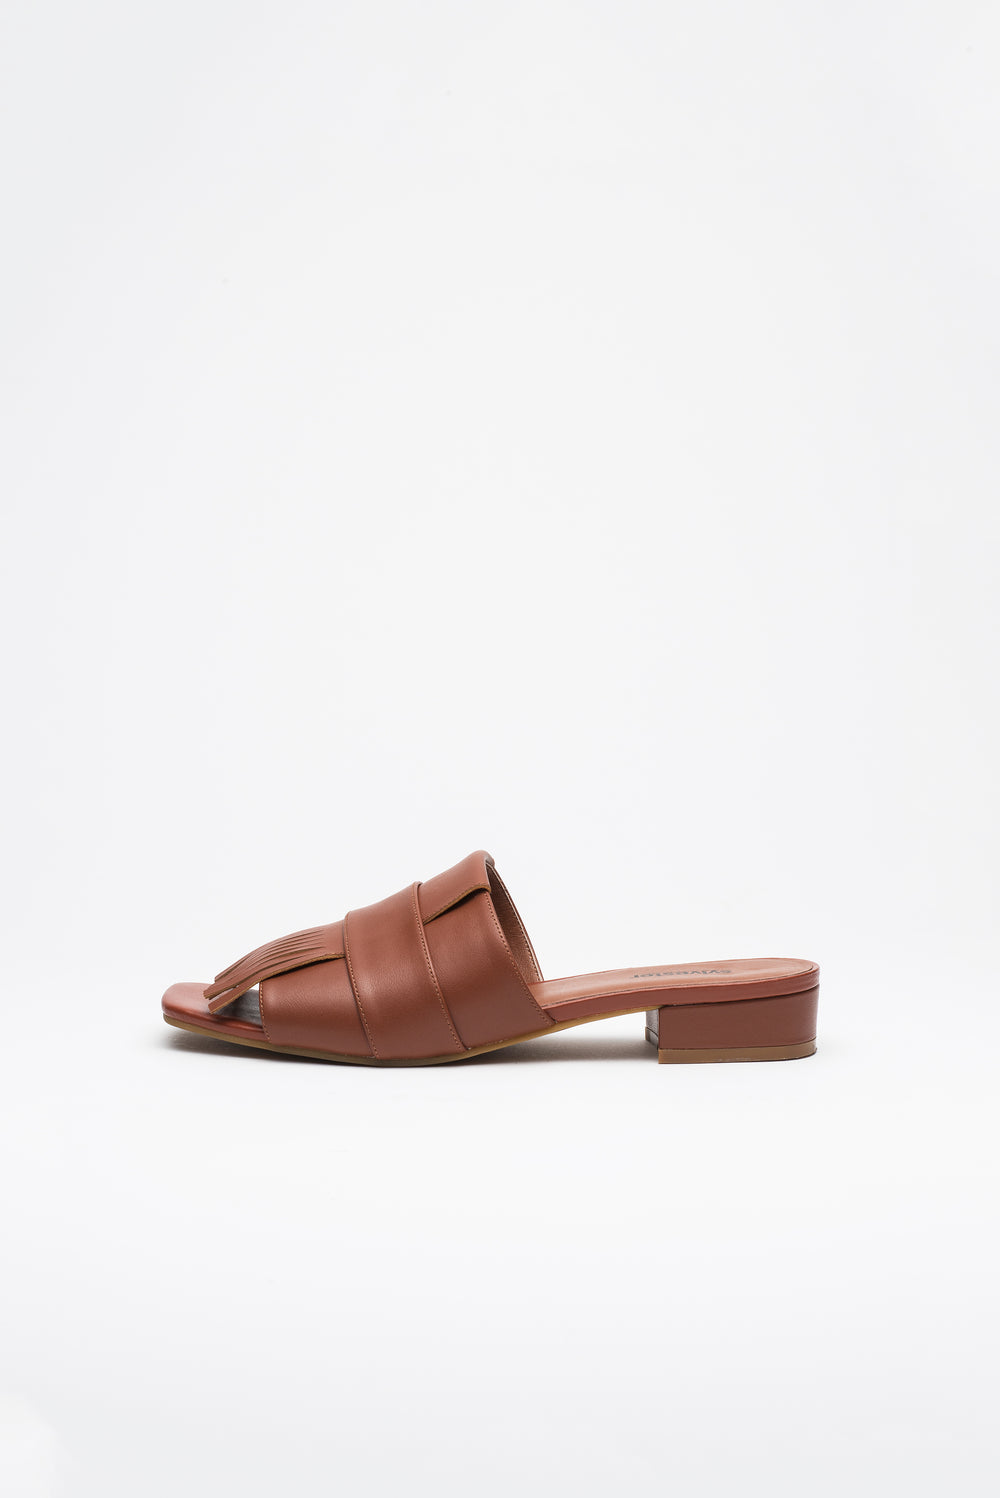 Loafer slides